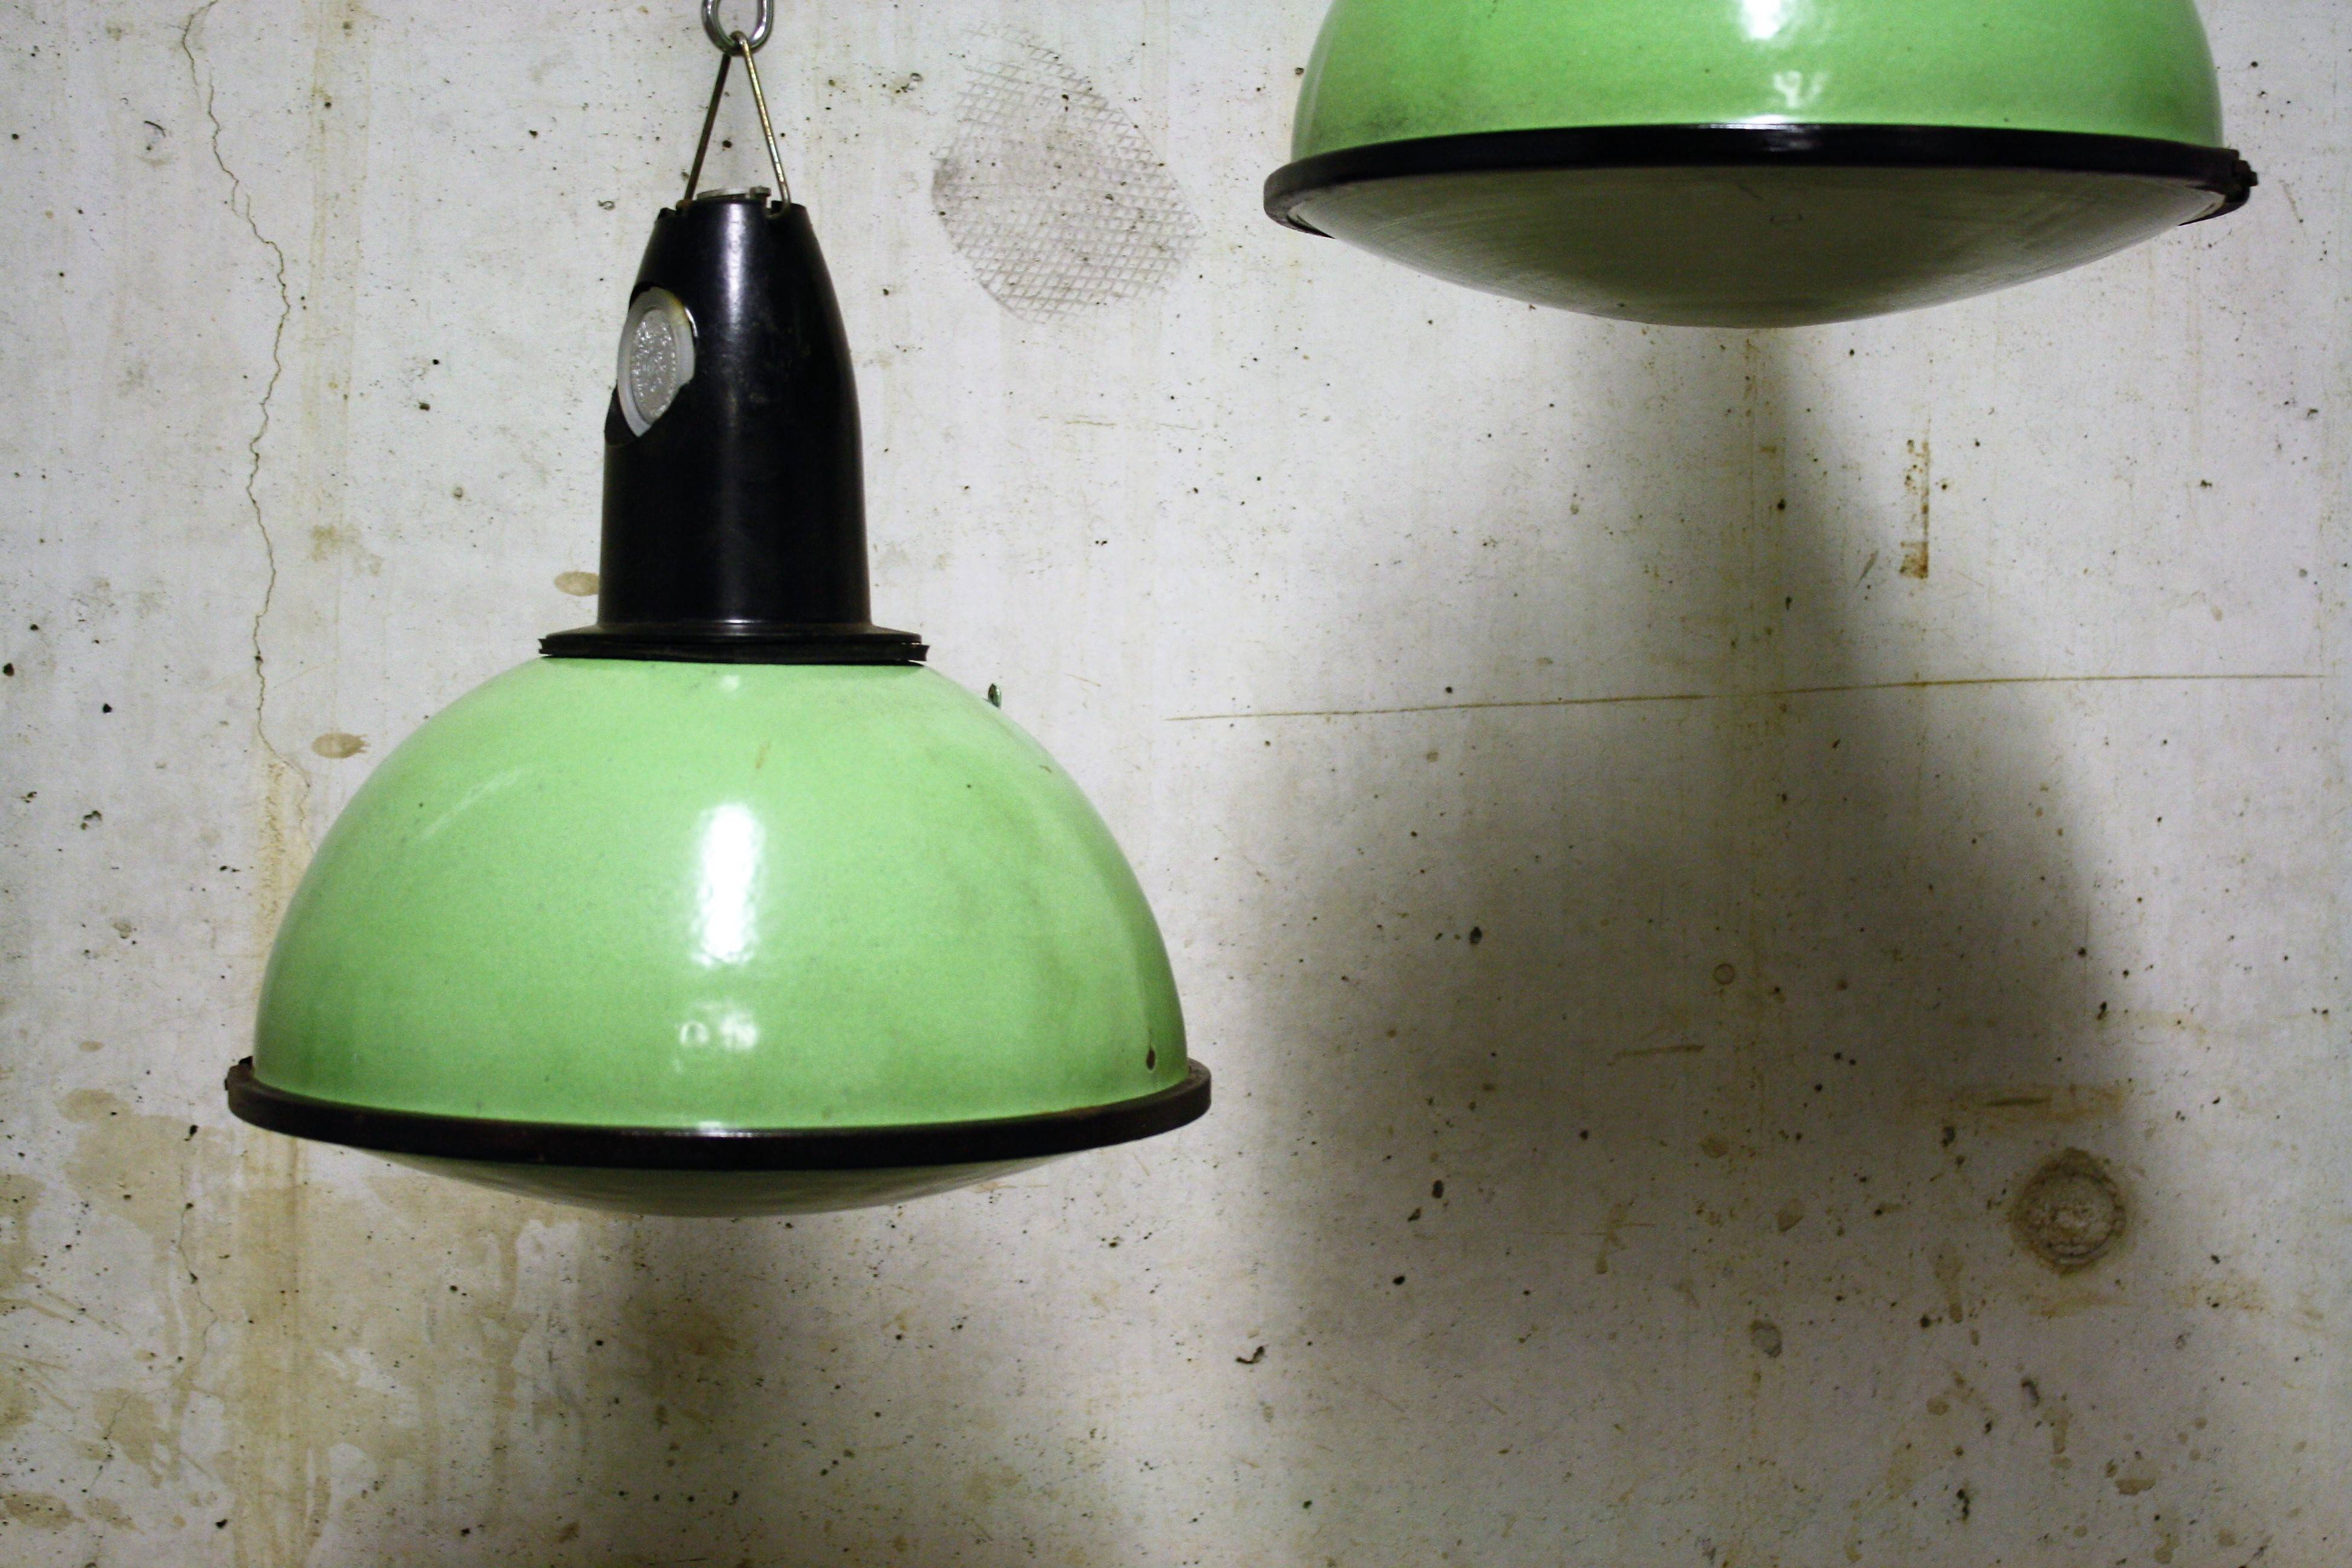 Green Industrial Pendant Lights With Glass 1960S (6Pcs) | Vinterior with 1960S Pendant Lights (Image 6 of 15)